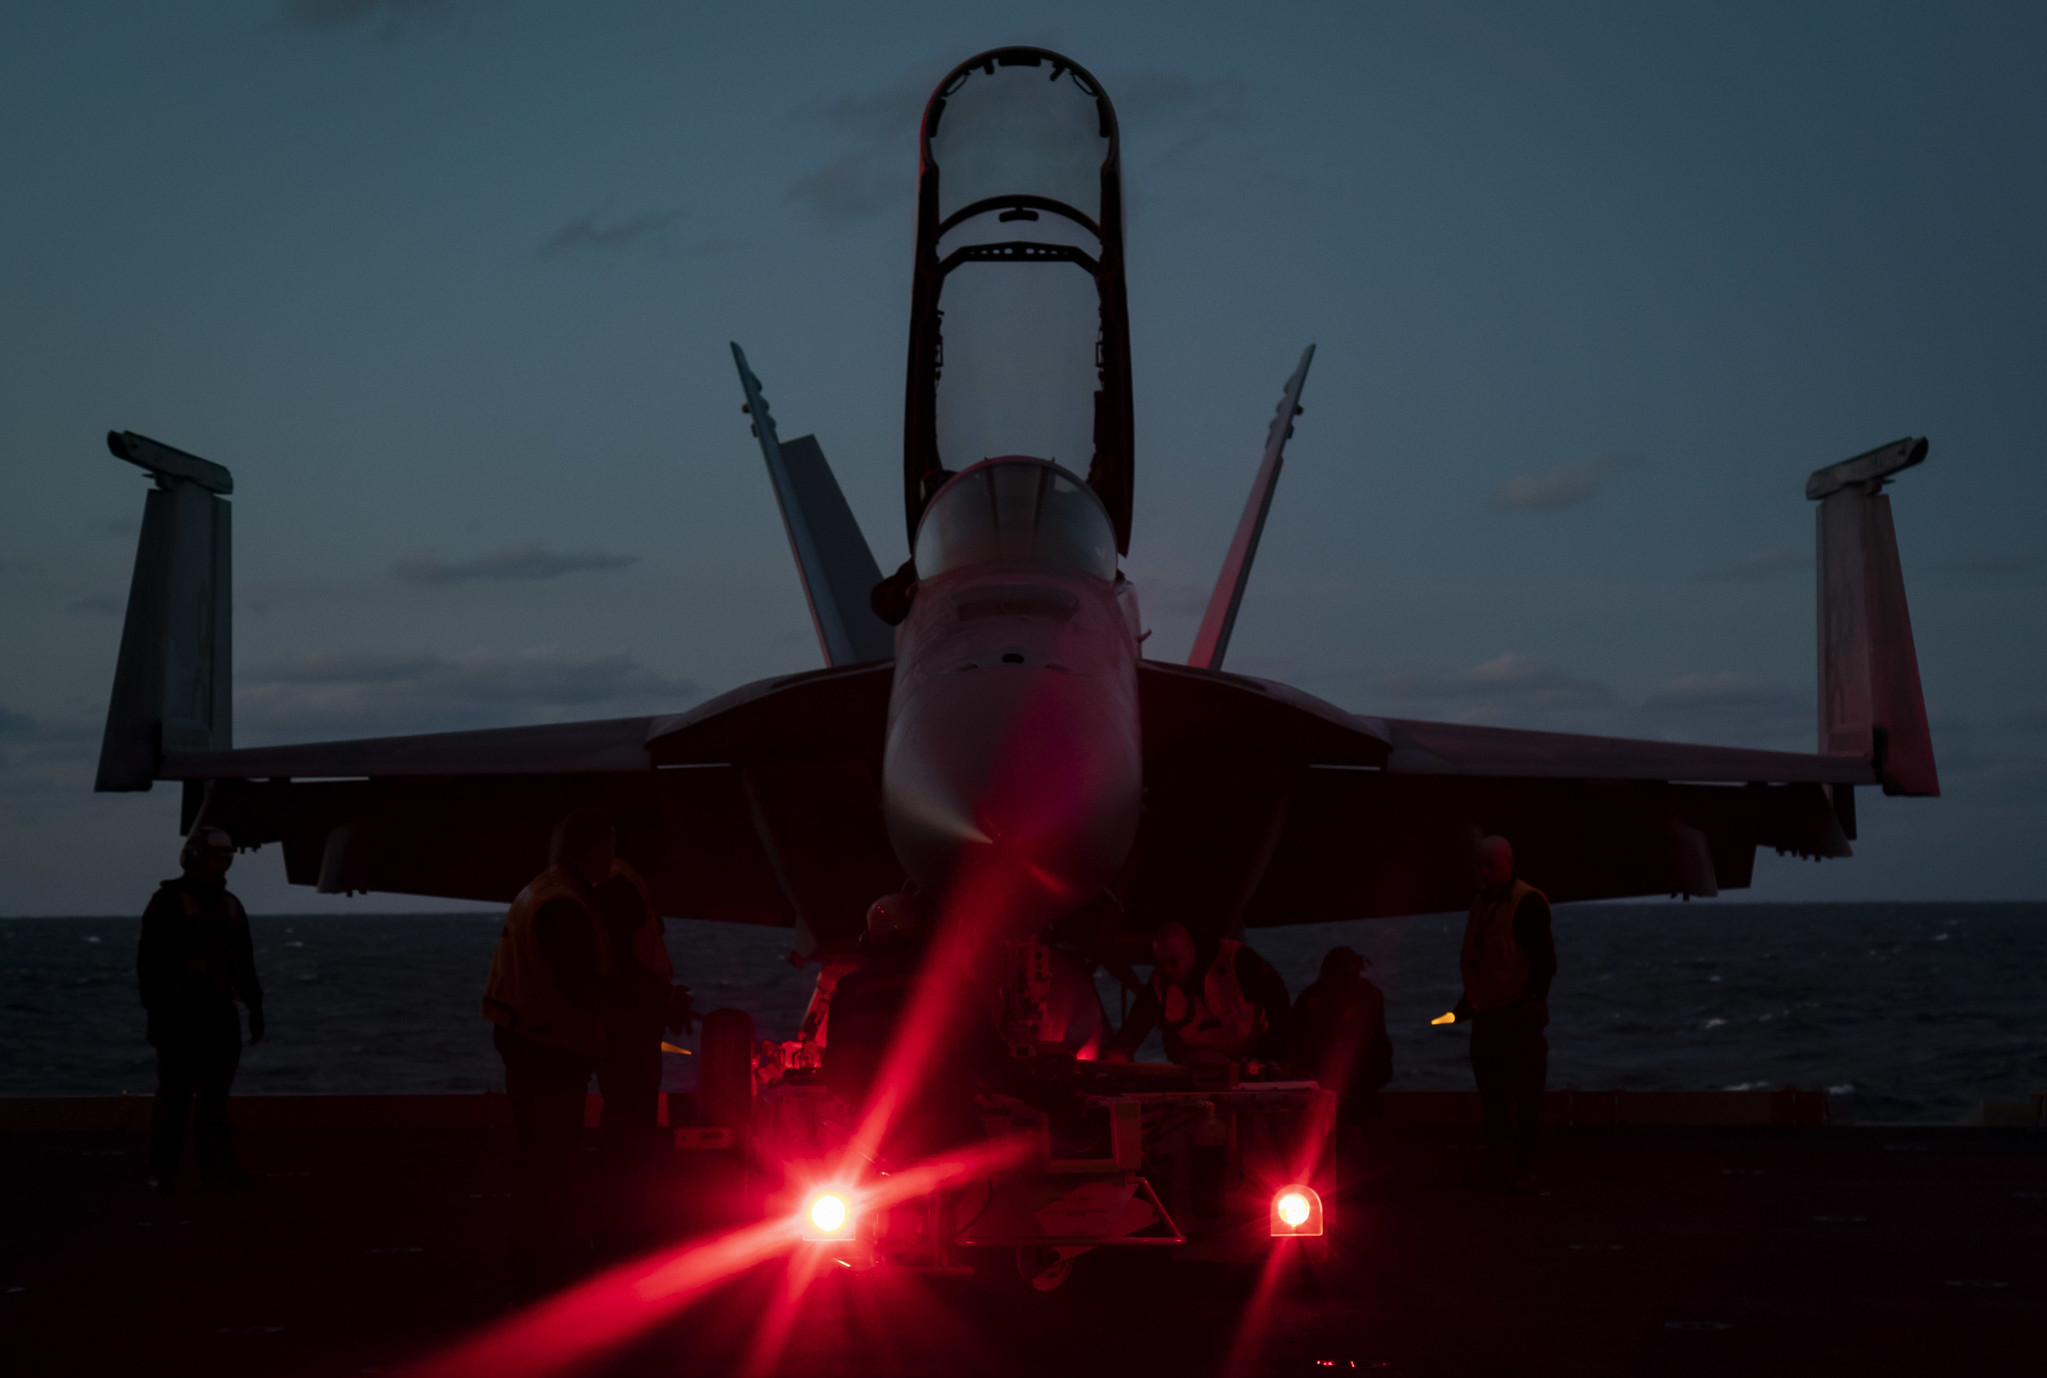 Sailors assigned to the aircraft carrier USS Gerald R. Ford (CVN 78) prepare to move an F/A-18F Super Hornet from an aircraft elevator to the hangar bay on Jan. 23, 2020, in the Atlantic Ocean. (Mass Communication Specialist 3rd Class Connor Loessin/Navy)